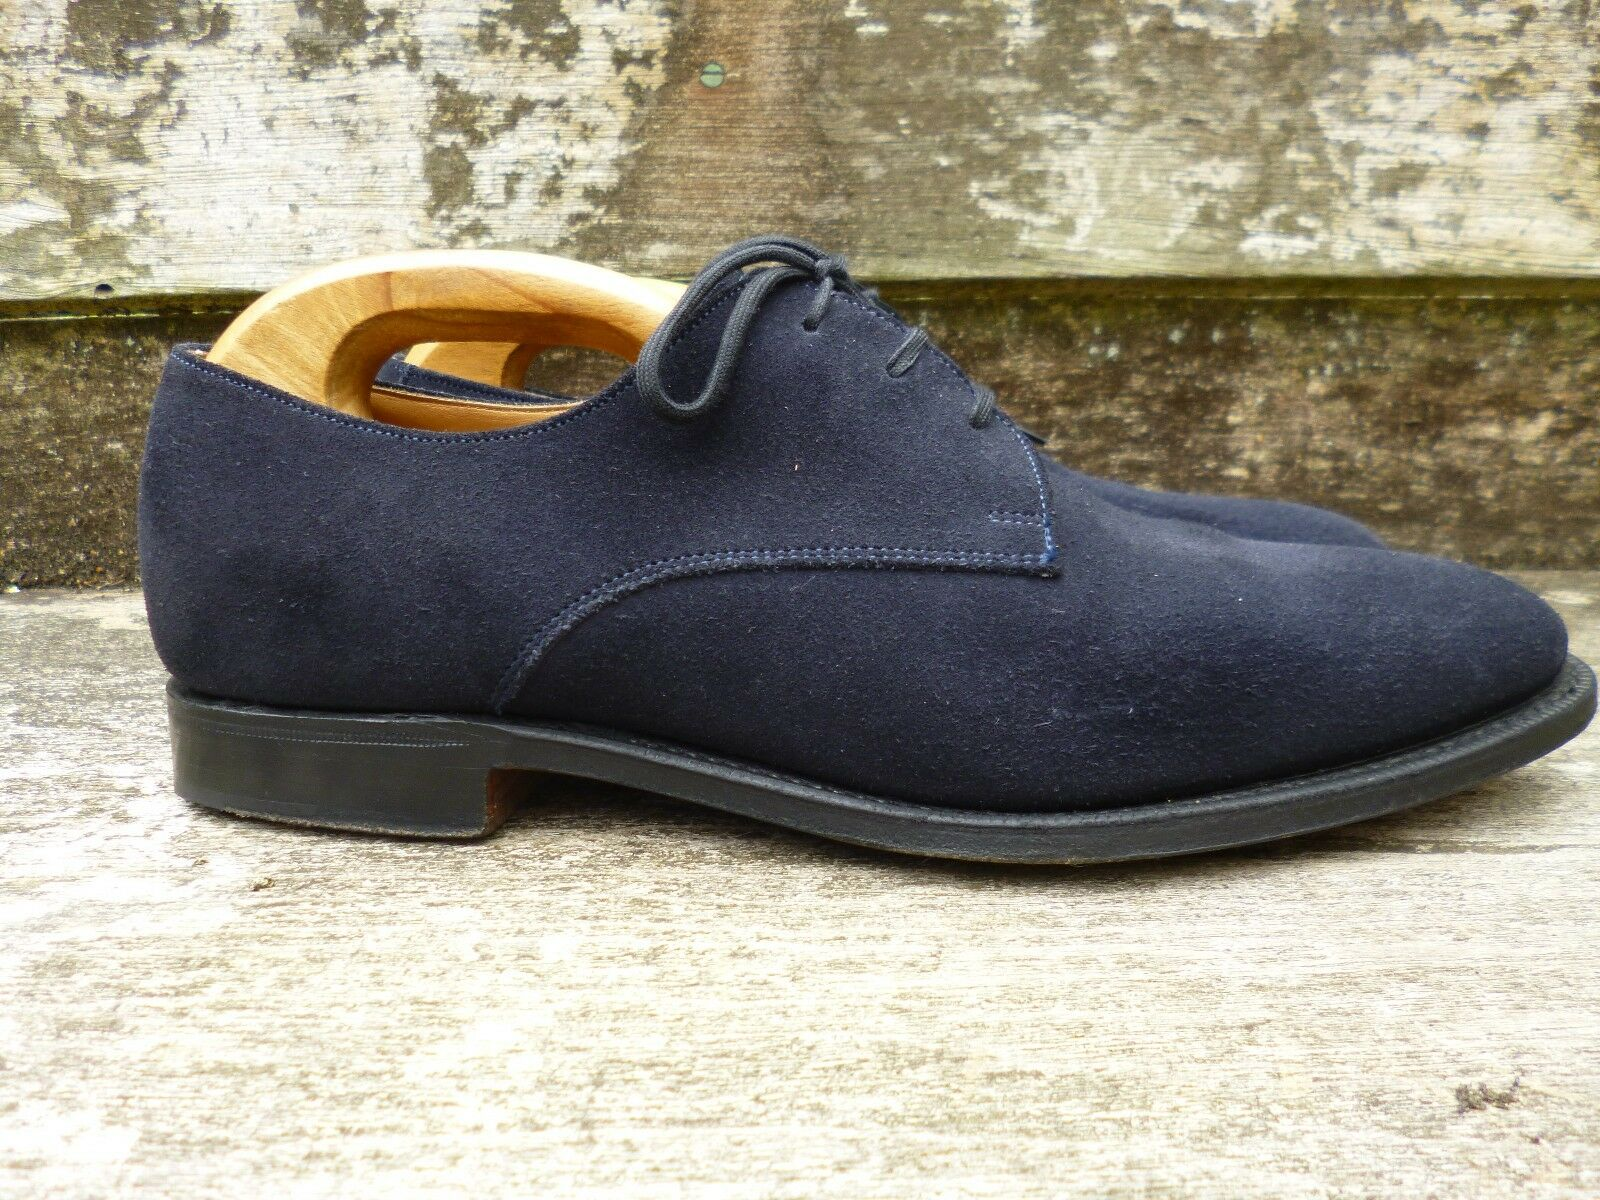 CHURCH DERBY Schuhe  – Blau SUEDE –  Schuhe UK 6.5 – OSLO – EXCELLENT CONDITION 1c5c20